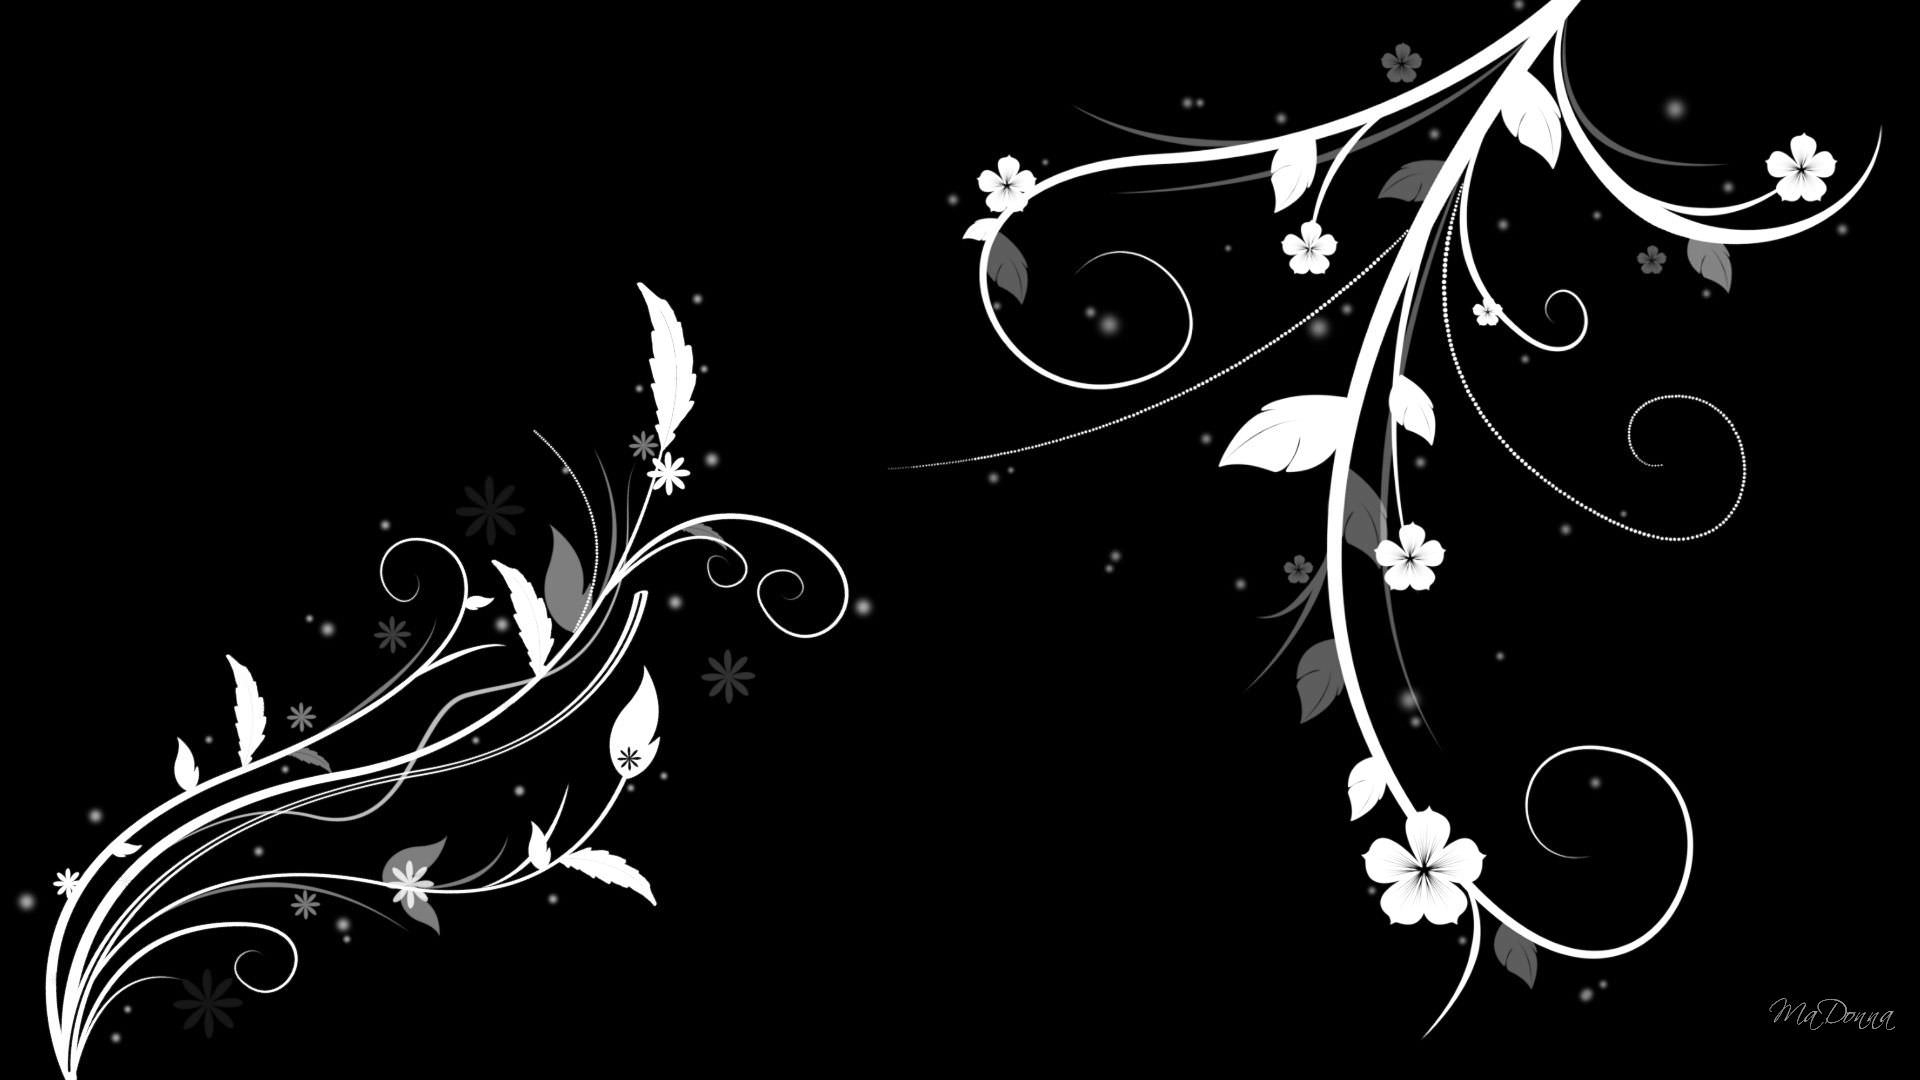 black & white floral wallpapers | floral patterns | freecreatives